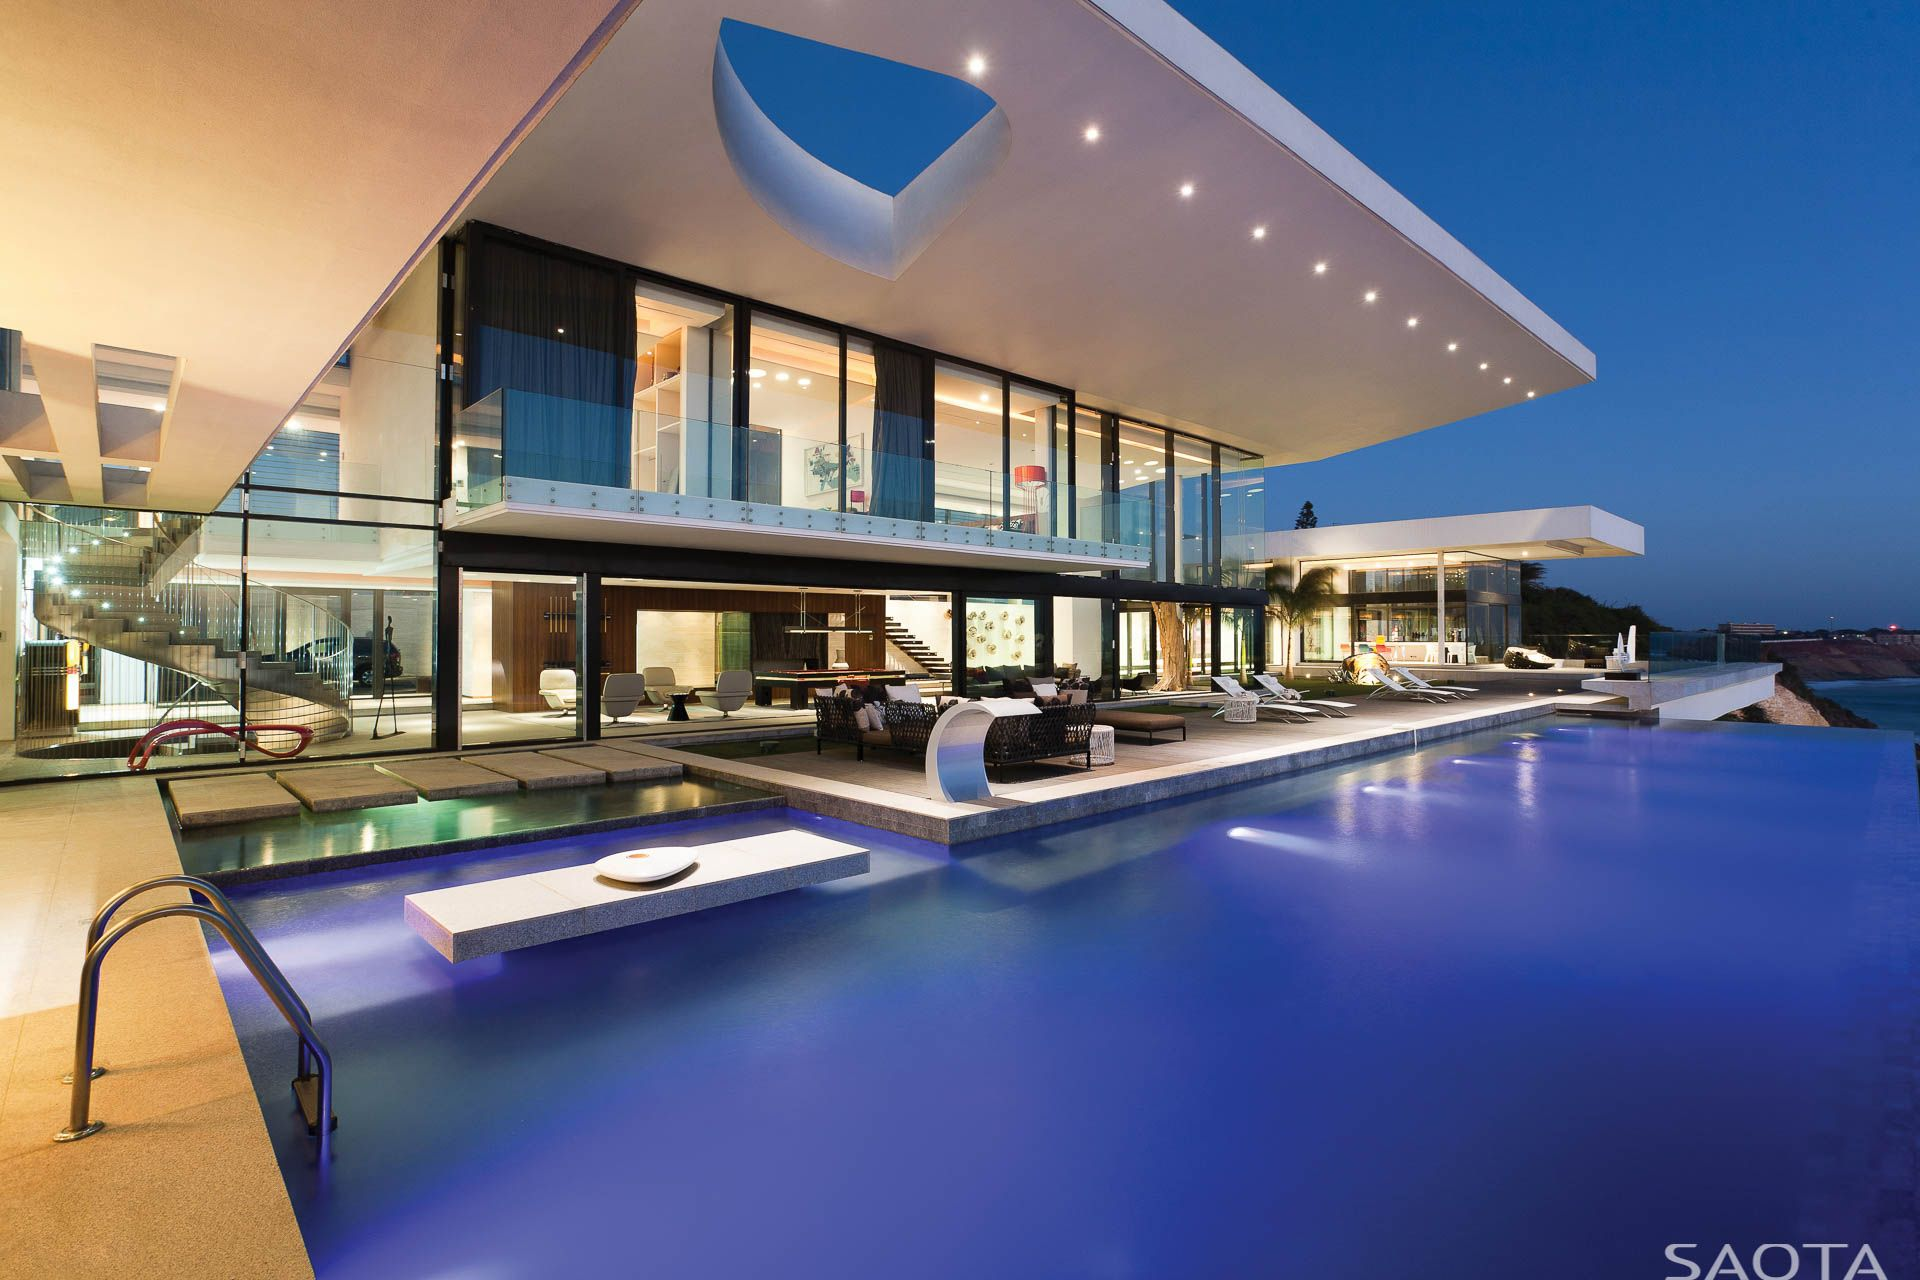 AmazingArchitecture A High end Home would just feel in plete